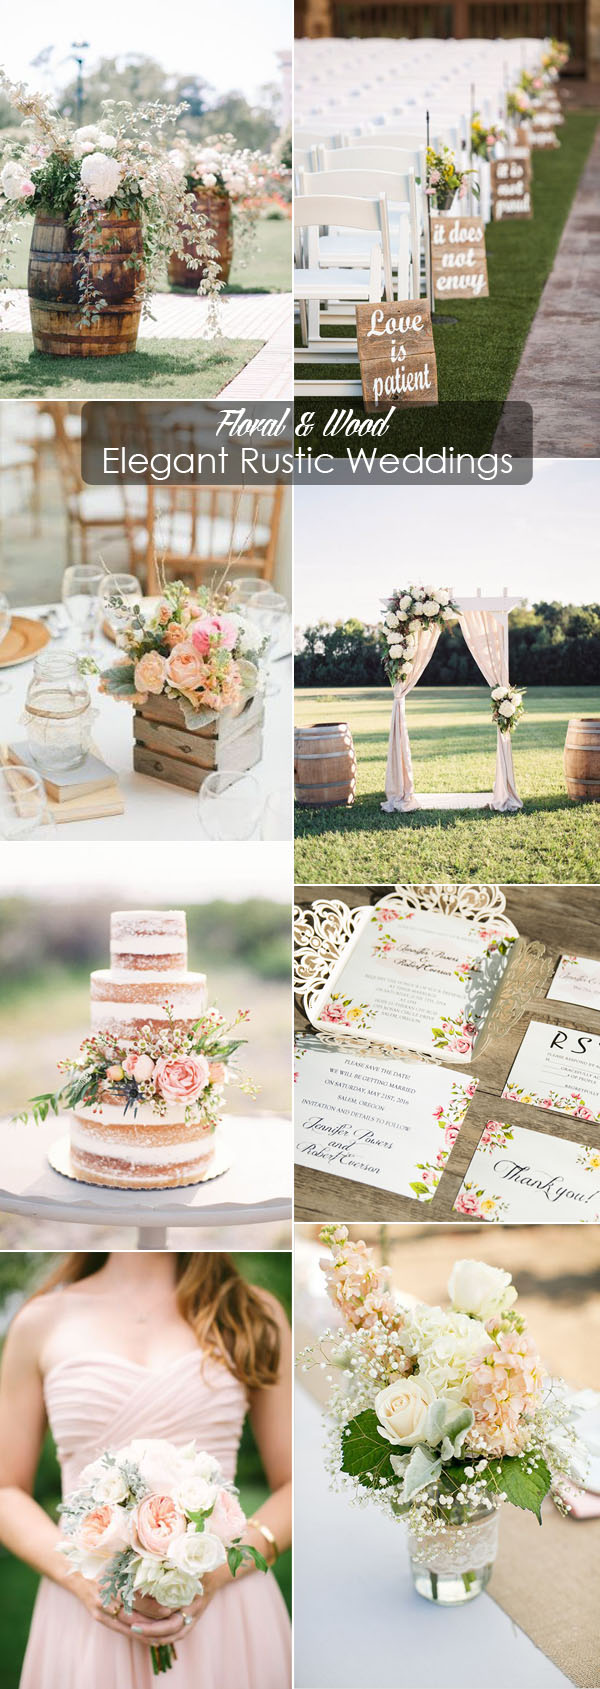 40 Rustic Wedding Ideas With Elegant Details